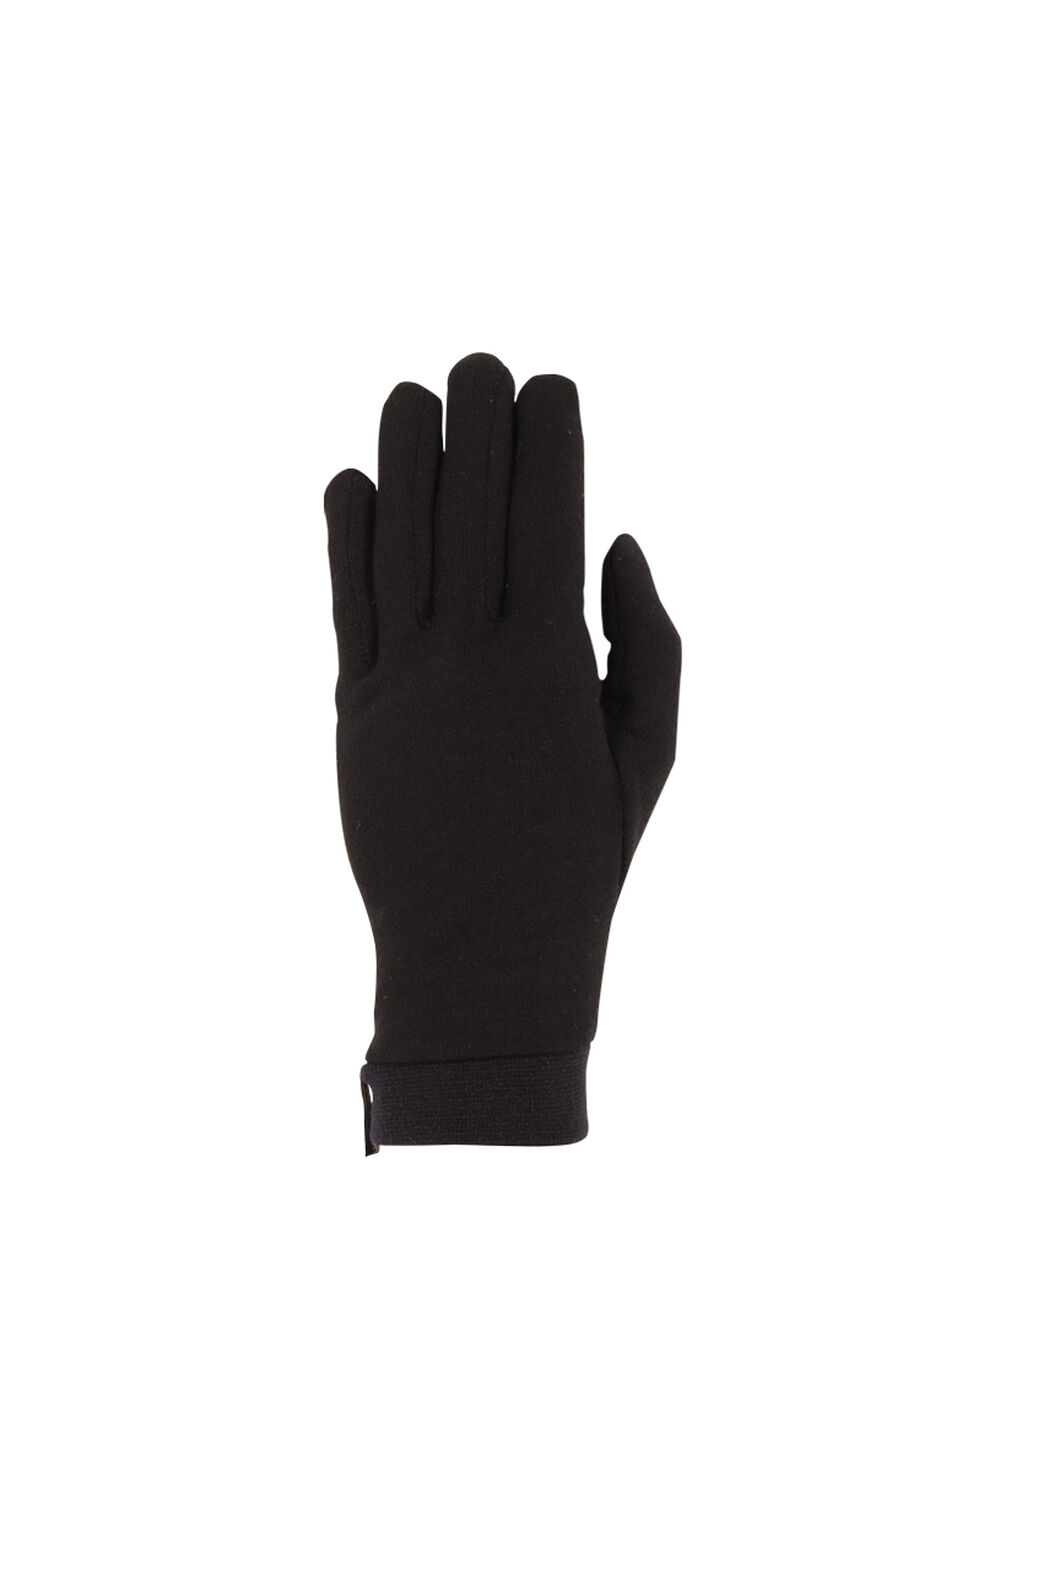 Merino Liner Gloves, Black, hi-res